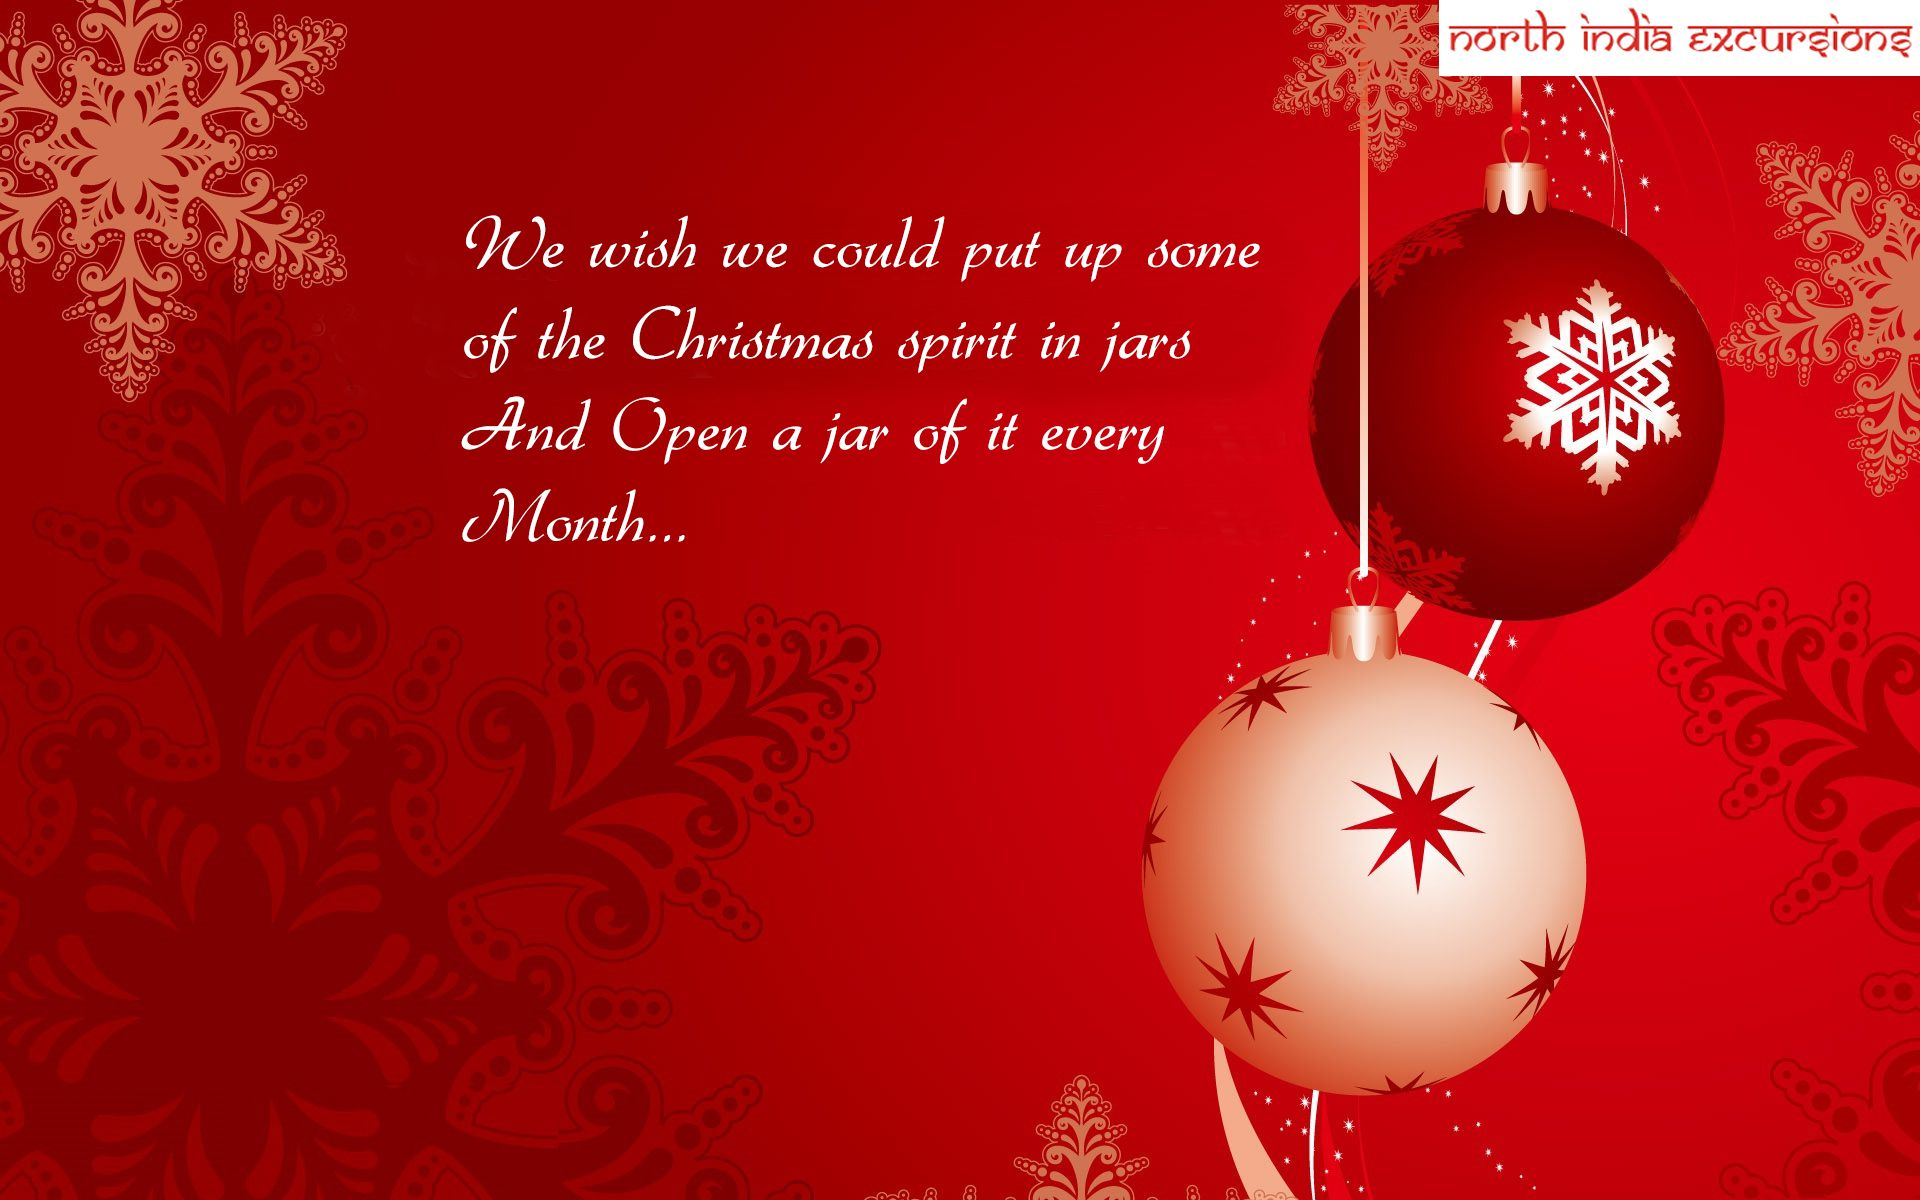 North India Excursions Sends Christmas Greeting To All Merry